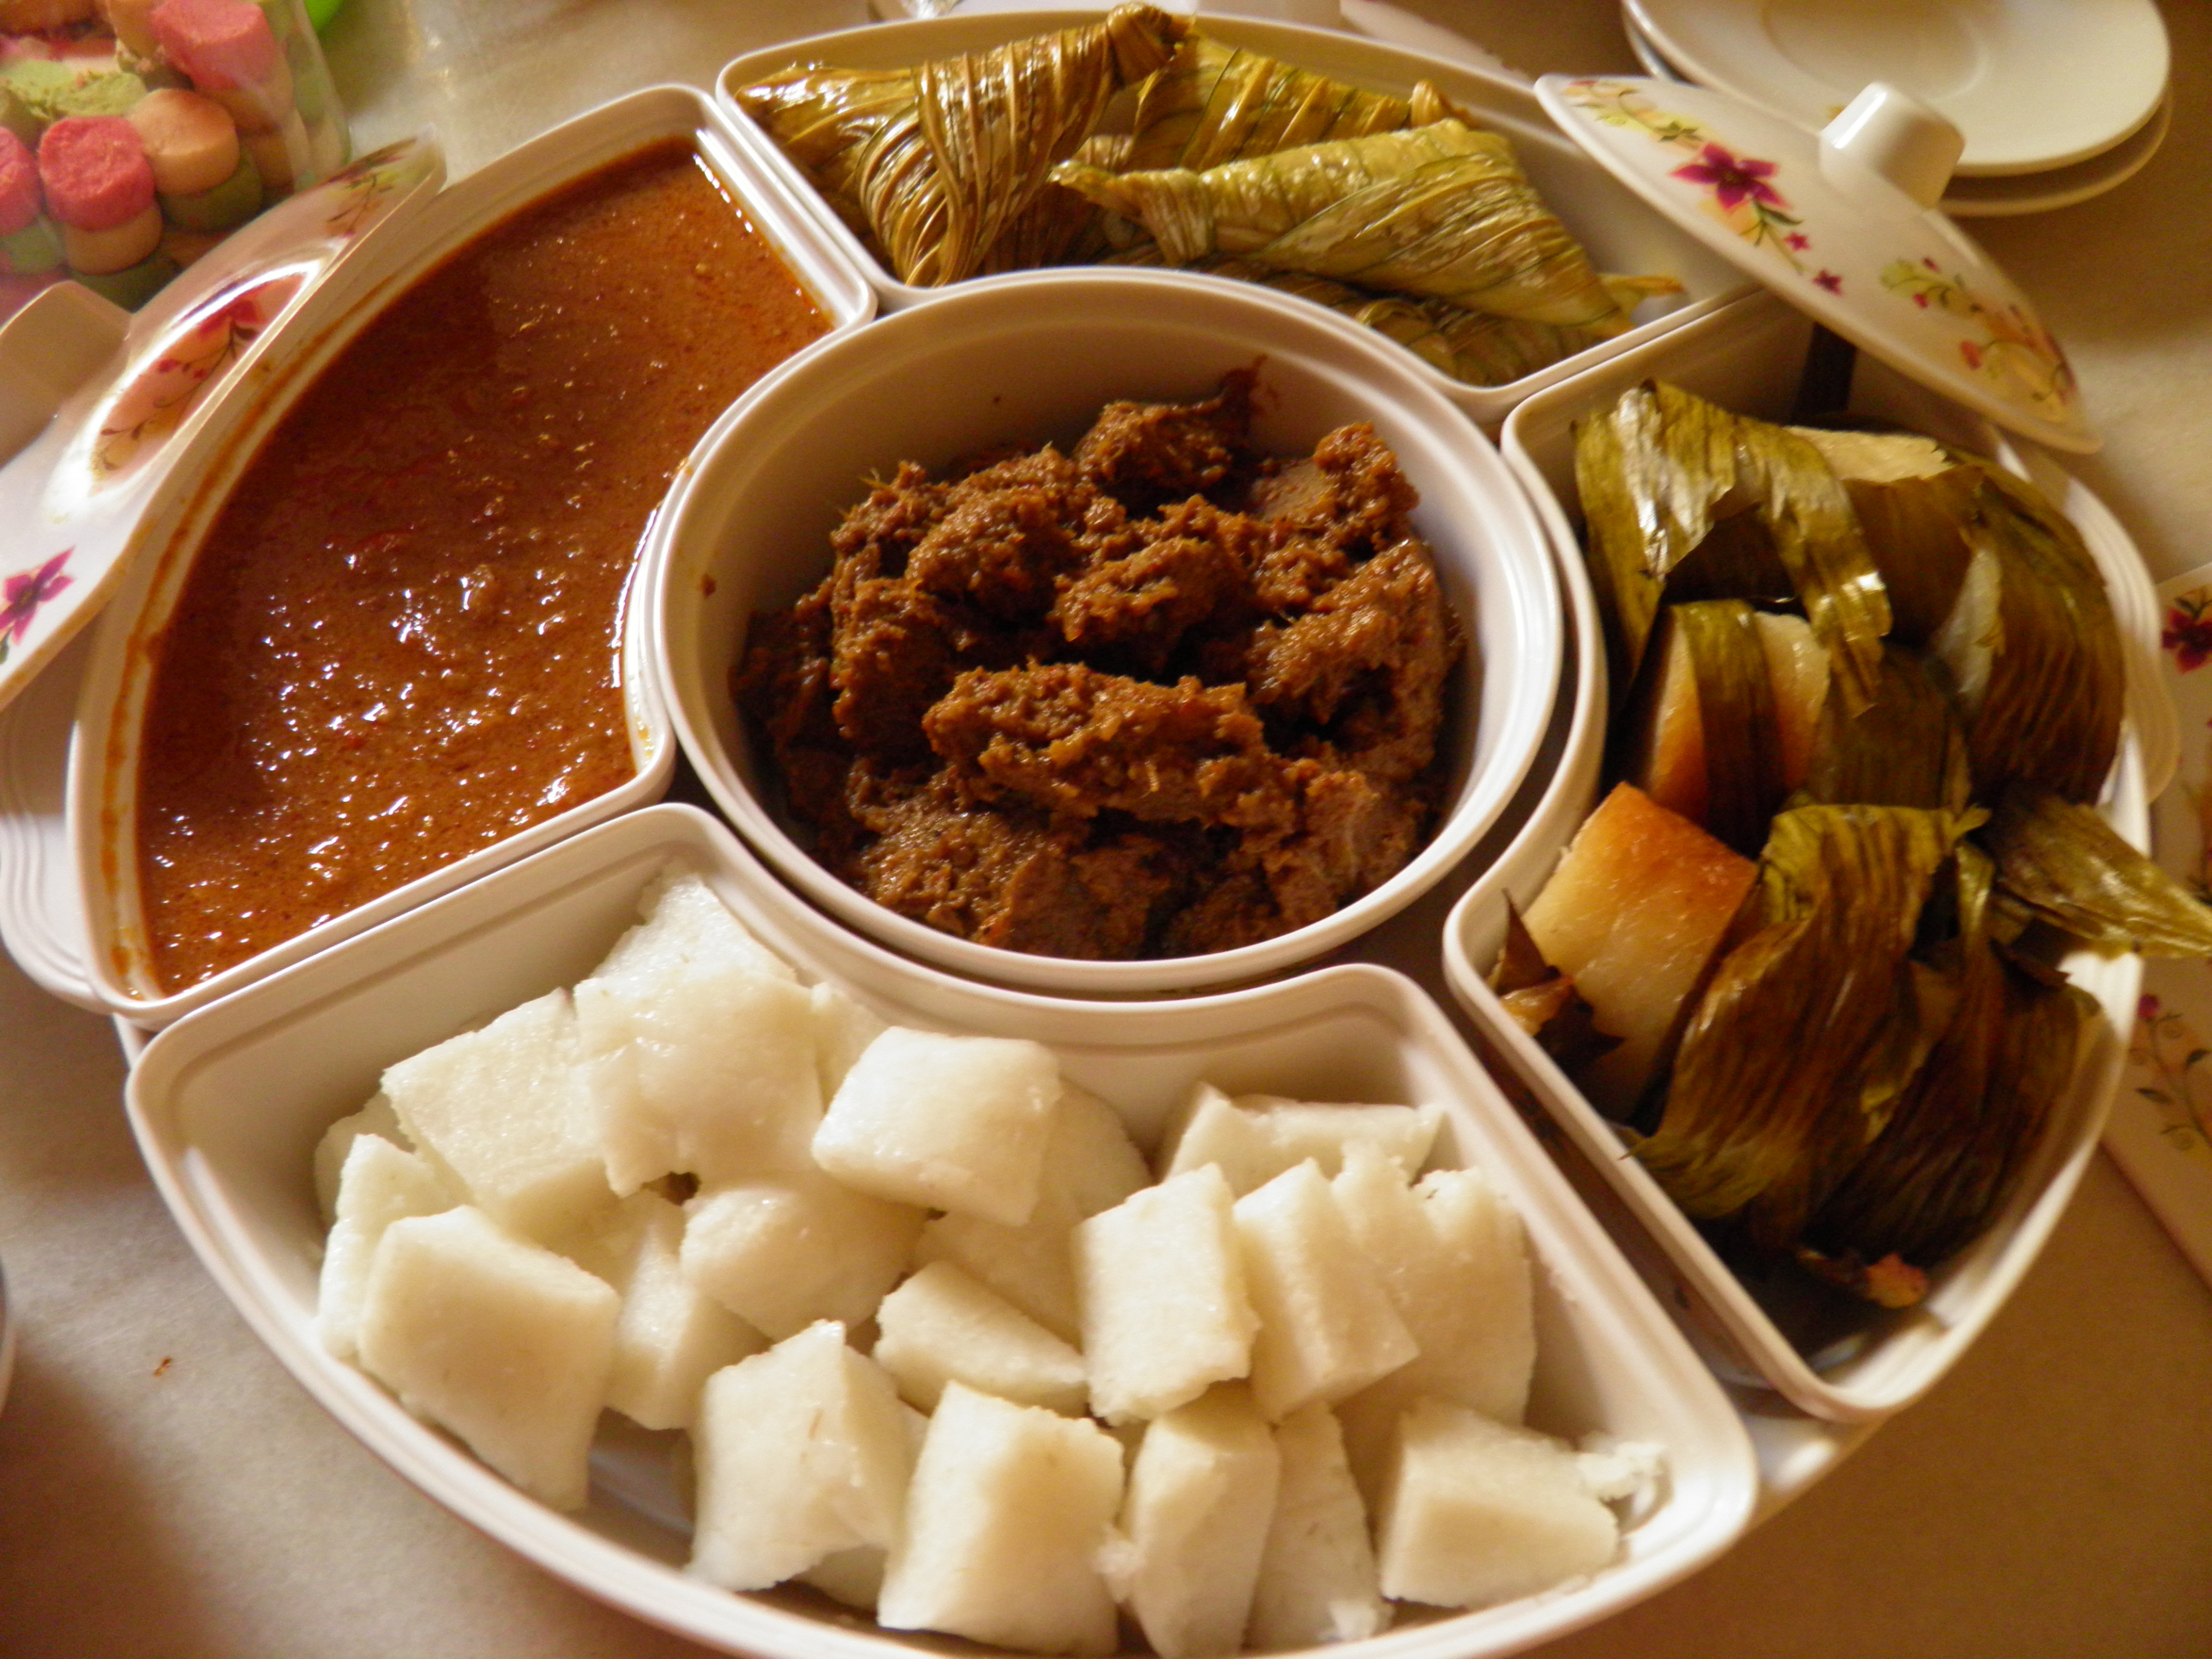 my favourite food in hari raya When celebrating ramadan in malaysia and singapore, millions of malay muslims spend the daylight hours avoiding food it makes sense that the food awaiting them at iftar (the end-of-day breaking of the fast) should be good, hearty, traditional malay food that warms the soul and rewards the assiduous.